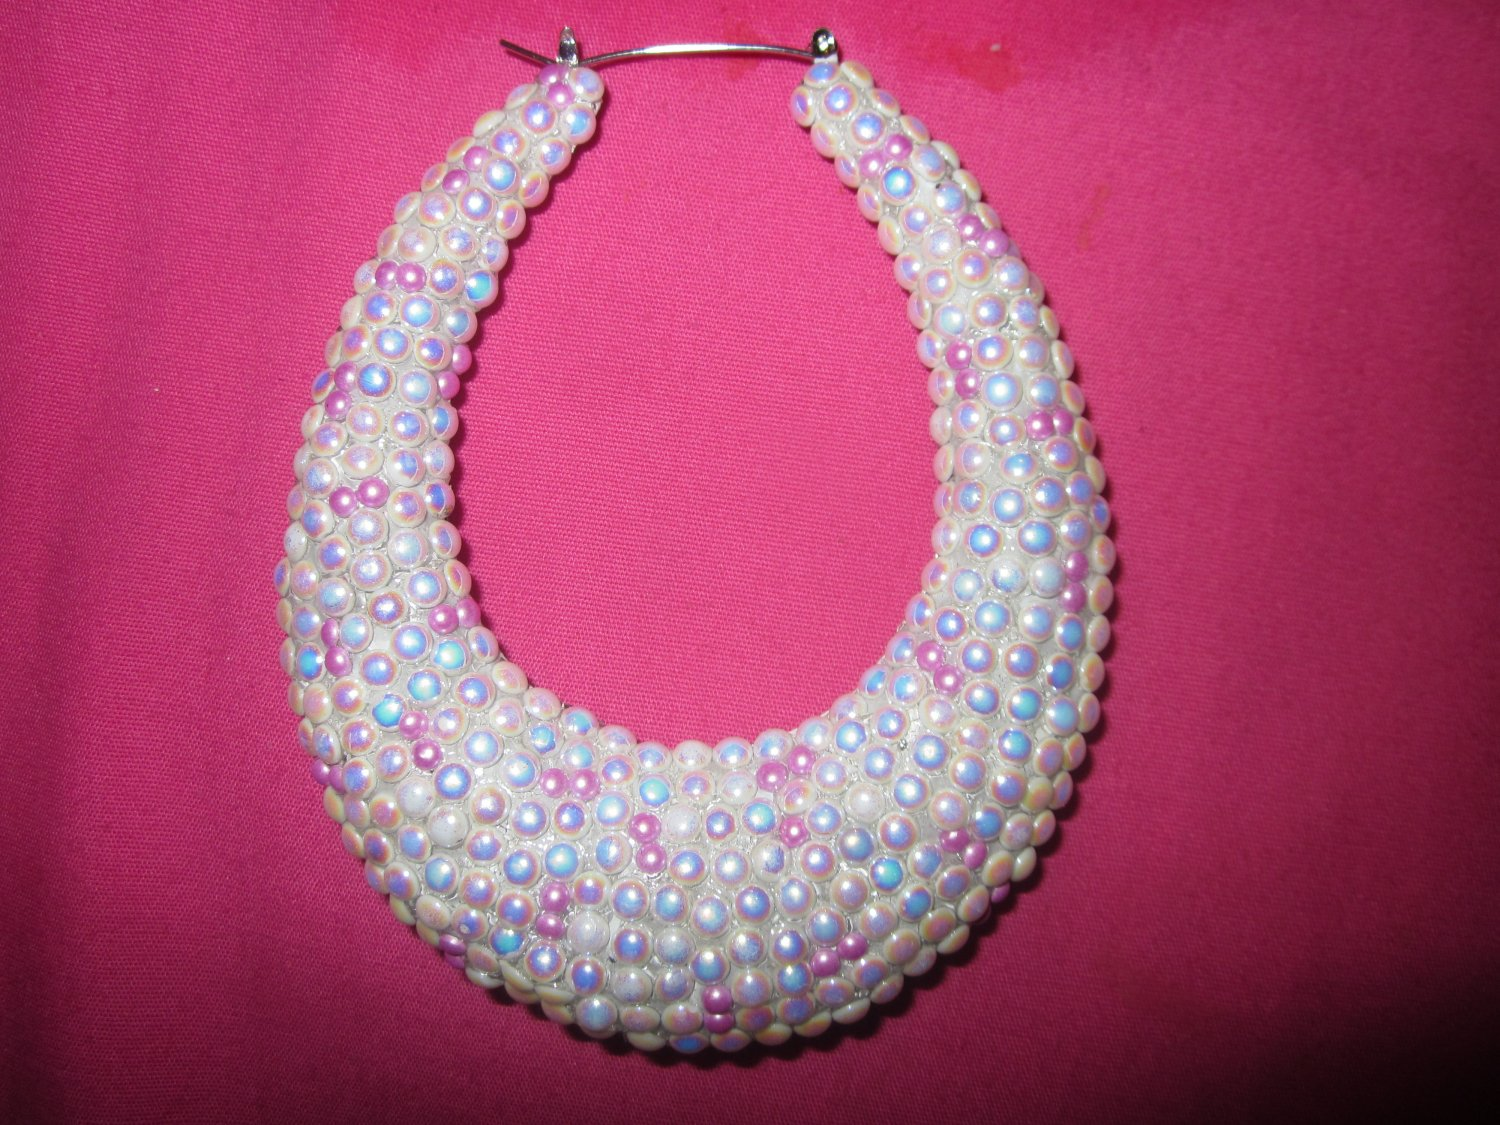 Crystal Pink Pearls Bamboo Teardrop Earrings Large Size like Basketball Wives